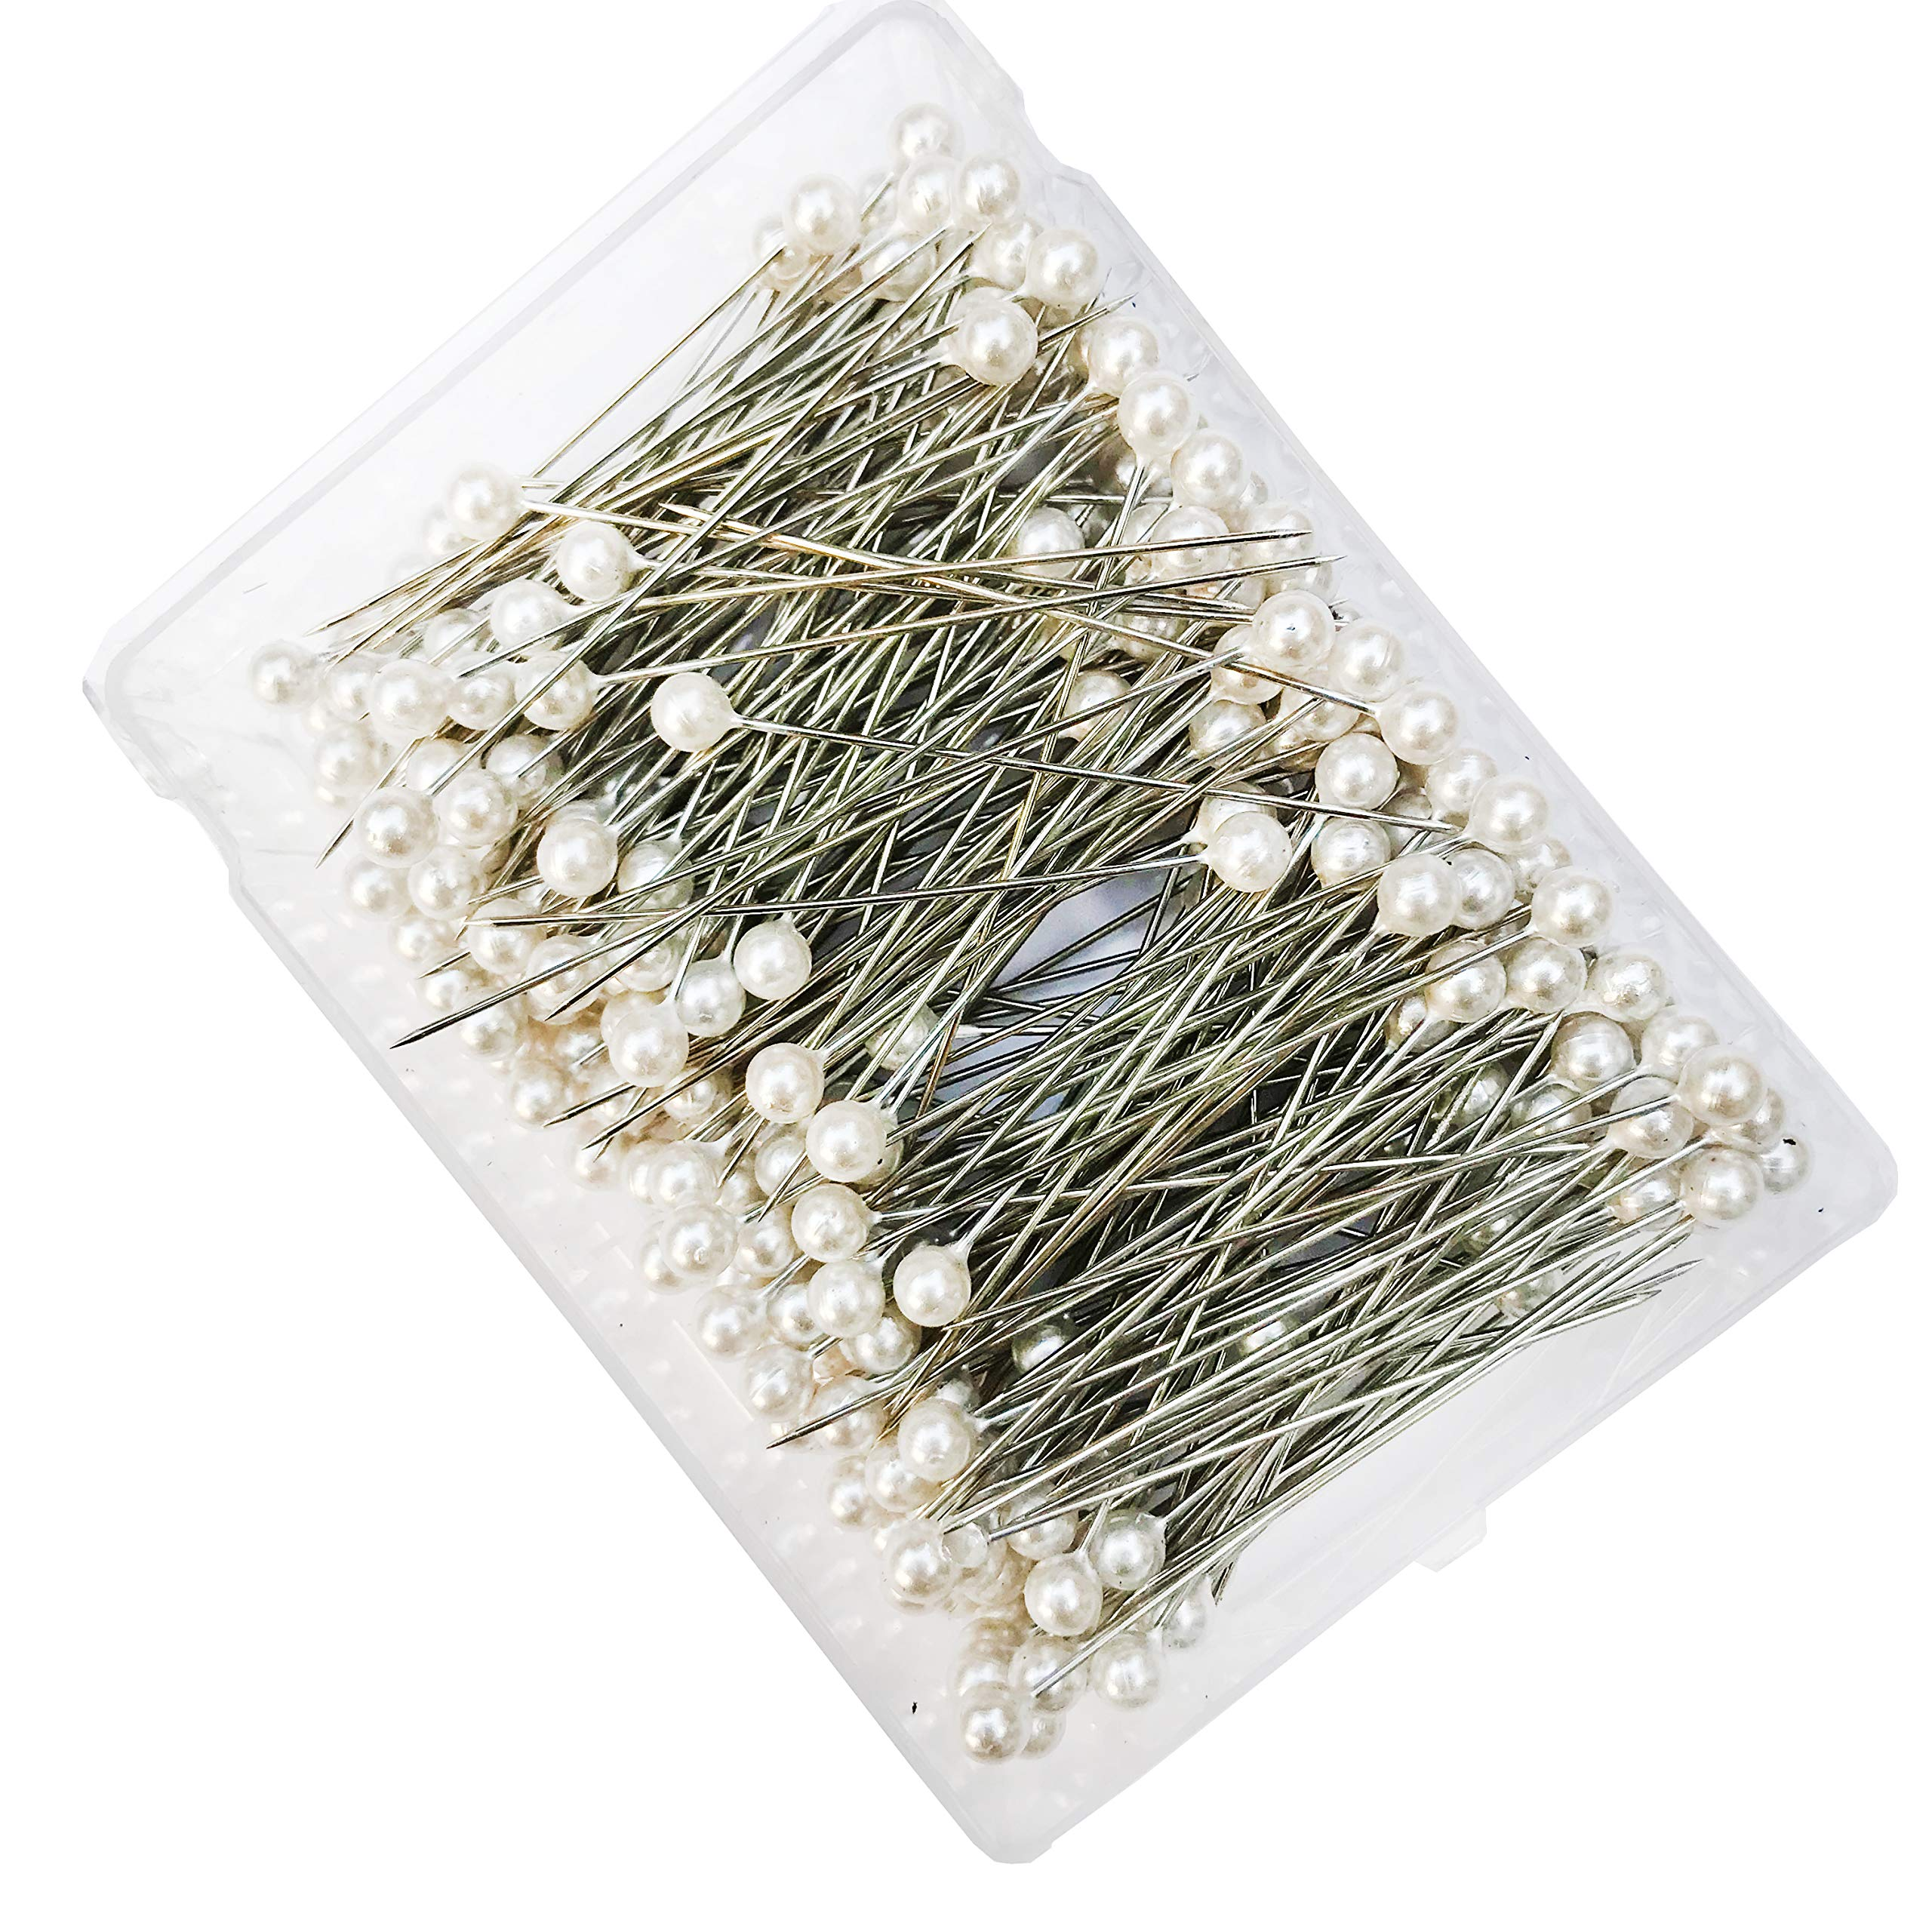 288Pcs (6mm 2.5'' L) Bulk Buy of White Pearl Teardrop Corsage Pins for Creating and Designing Florals